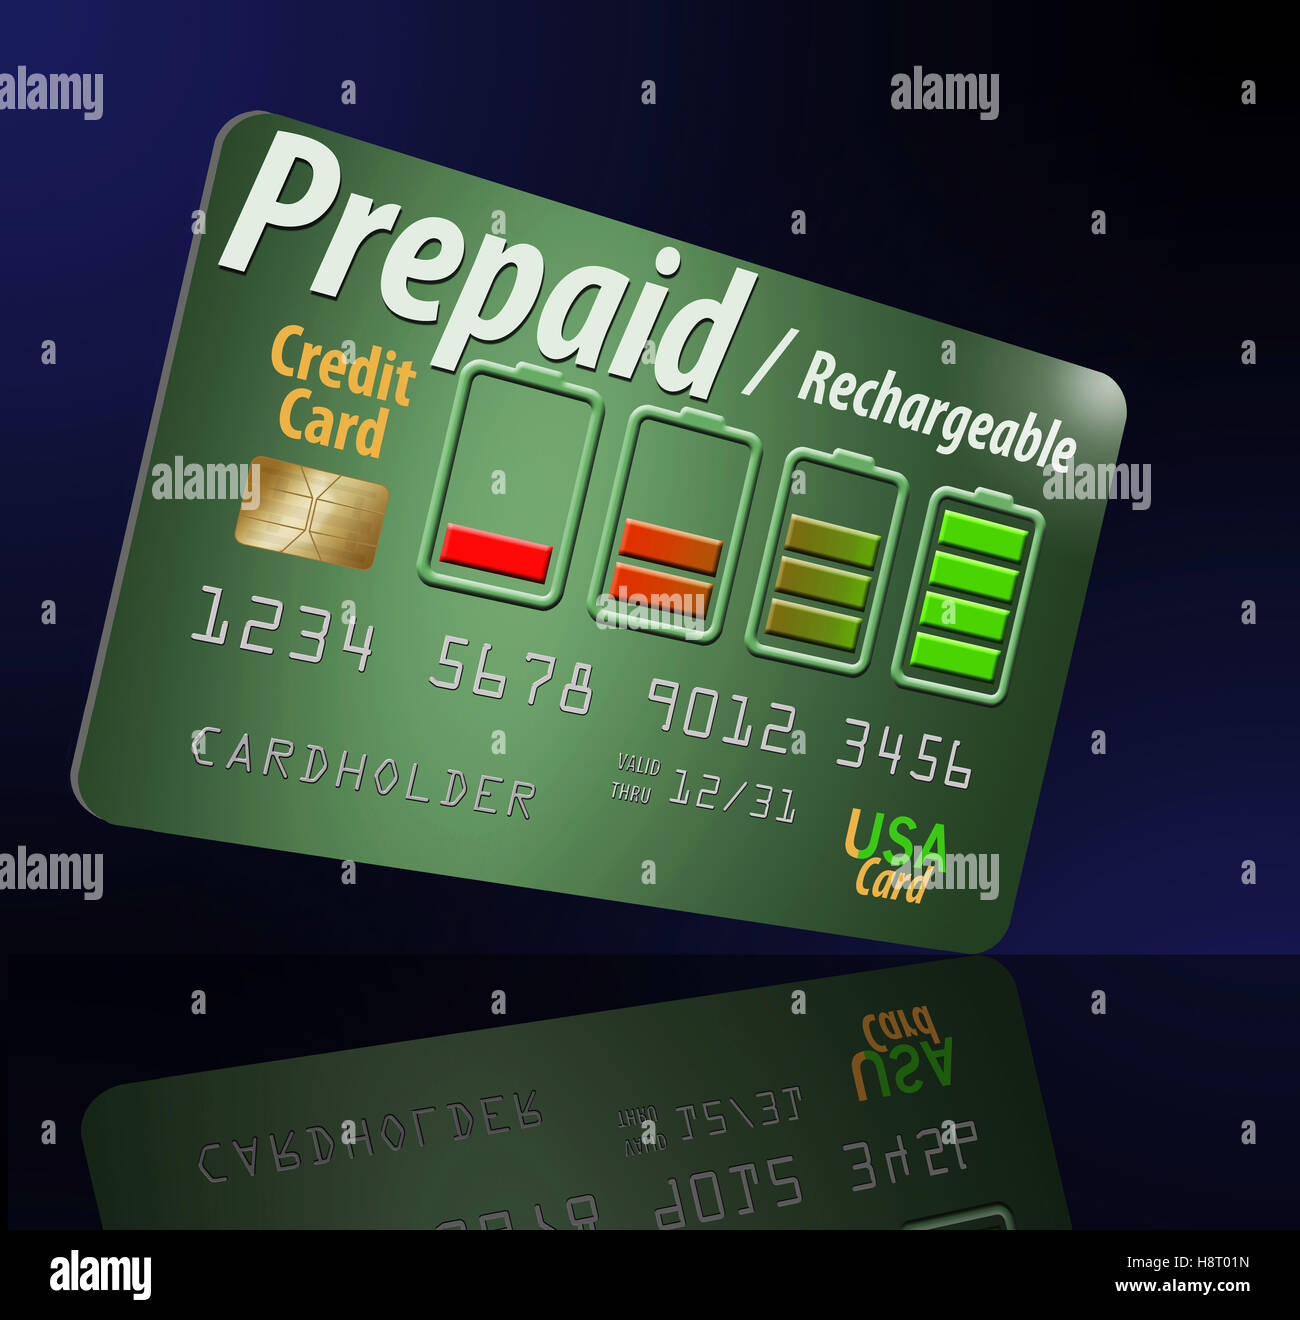 Prepaid, rechargeable credit card to help someone establish a credit history. - Stock Image